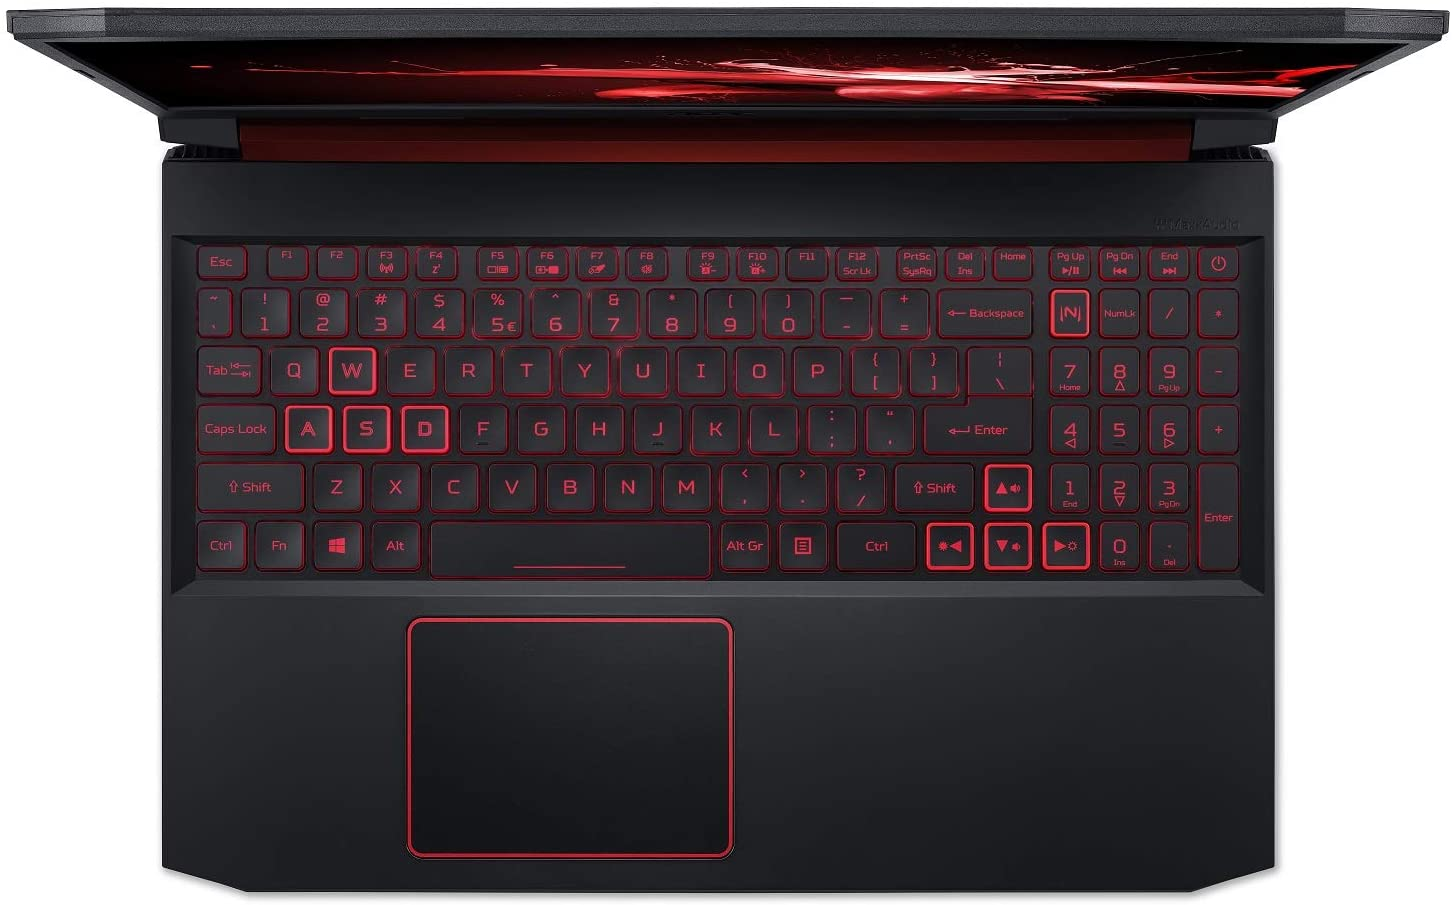 The backlit keyboard and trackpad included on the Acer Nitro 5 gaming laptop.